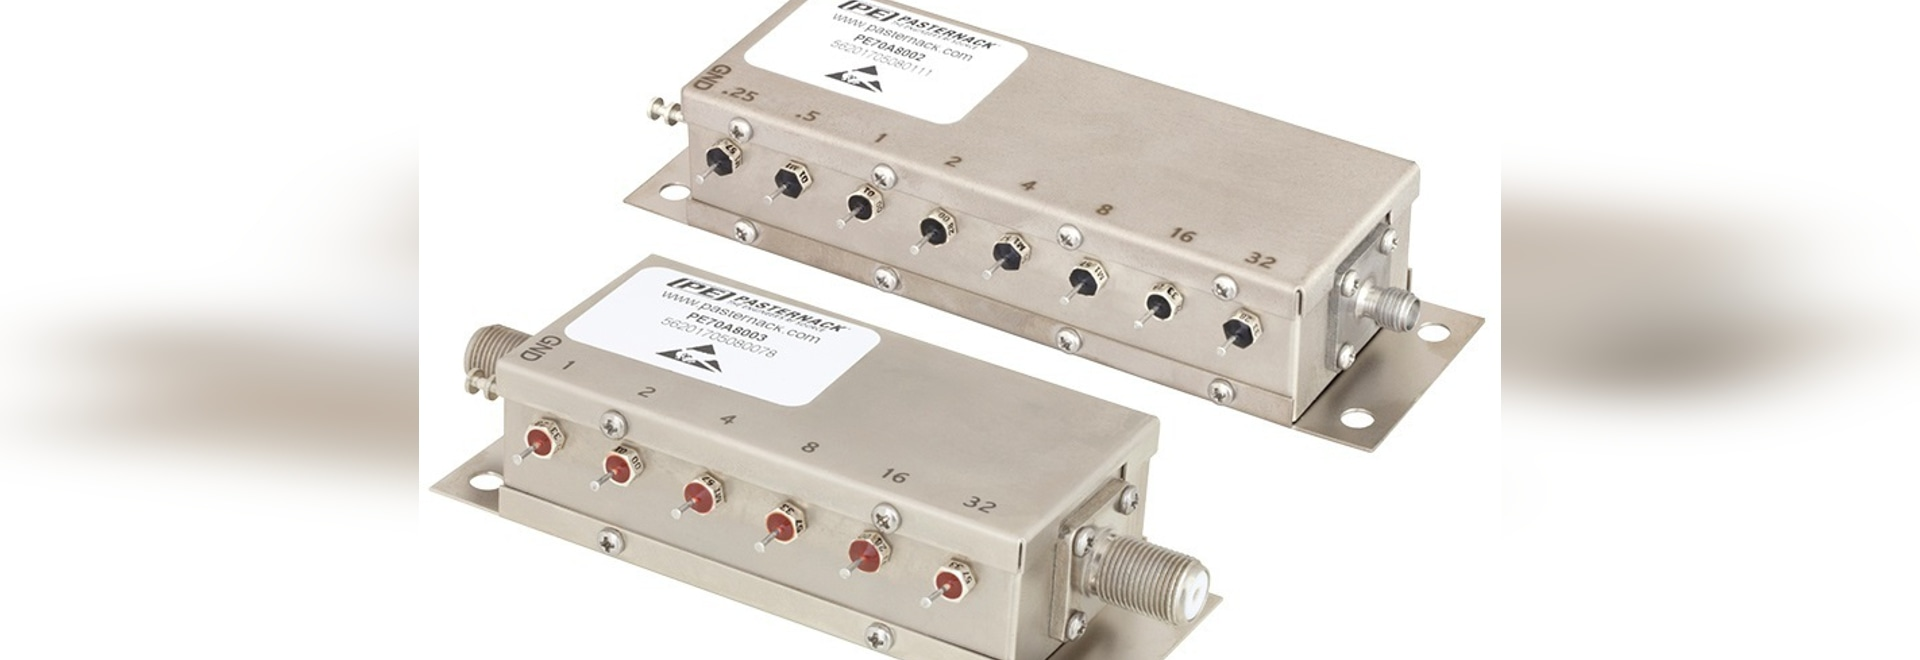 Relay Controlled Programmable Attenuator Series Launches And Ships Rf Switch Is Stocked The Same Day By Pasternack